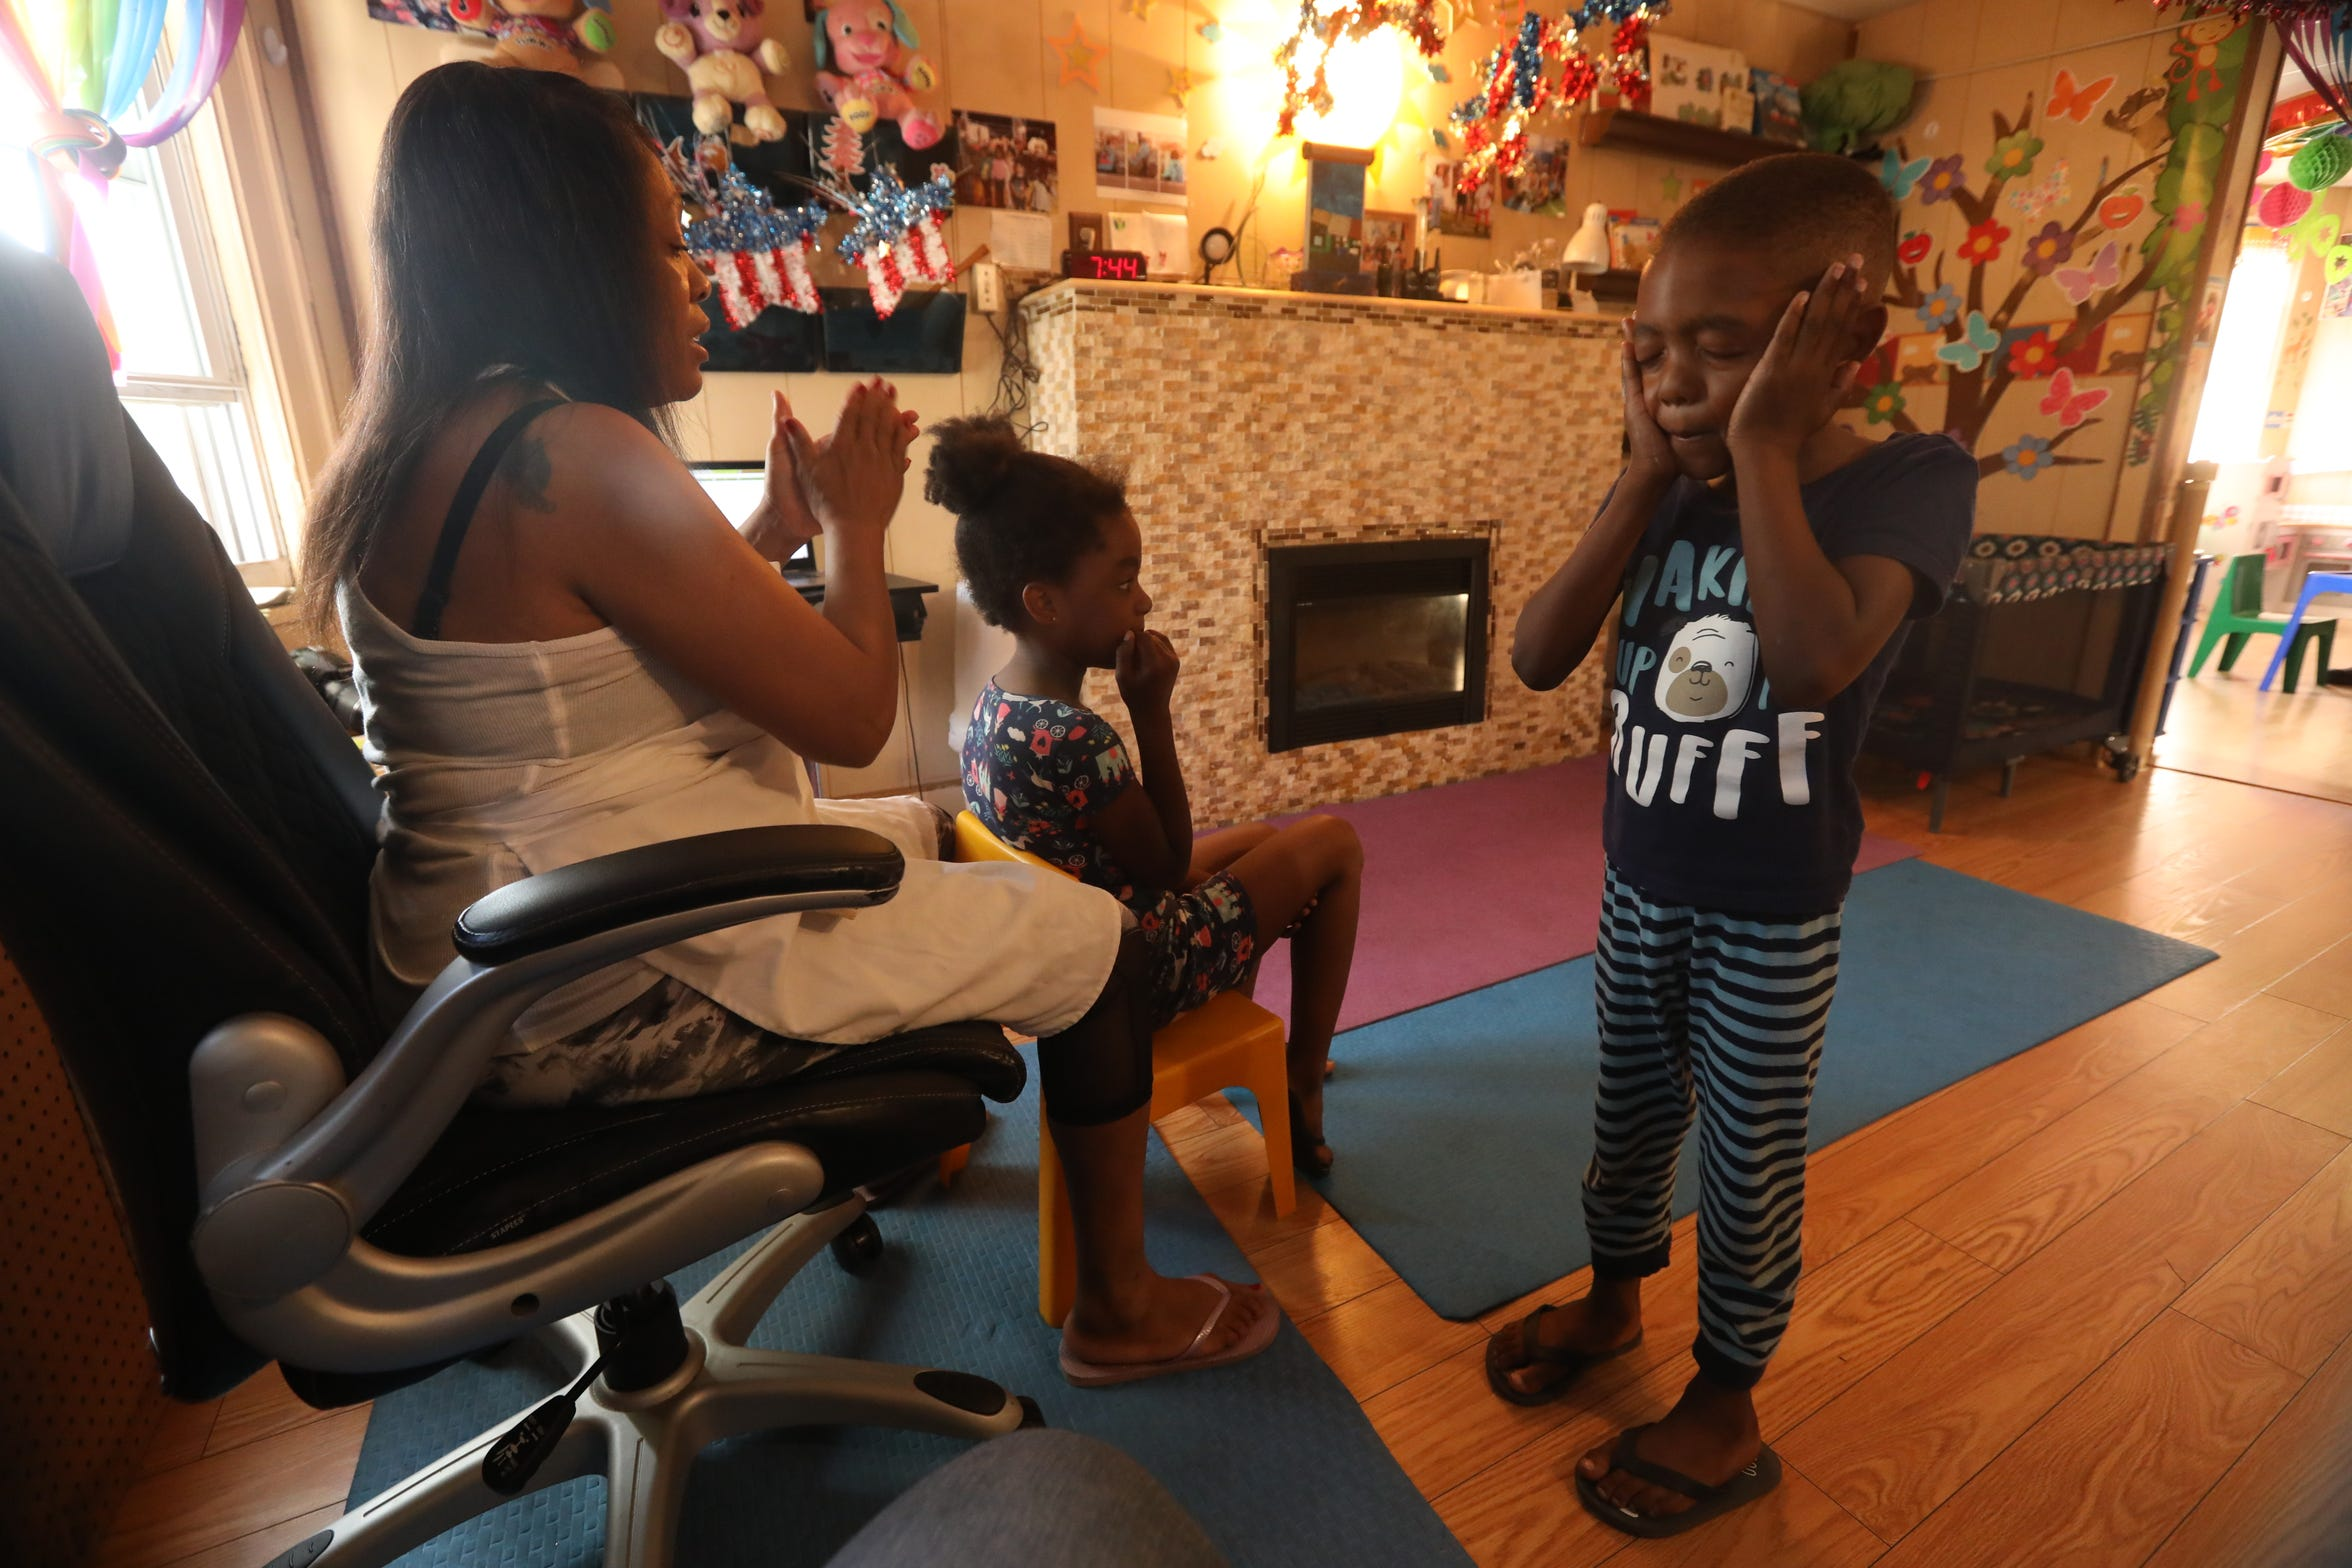 """Deloris Hogan, known as """"Nunu,"""" gets Naima Harrell, 8, and her brother Noah Harrell, 6, ready for the day after they spent the night at Dee's Tots Child Care in New Rochelle Aug. 16, 2019. The siblings stay overnight when their mother, a registered nurse, works the overnight shift."""